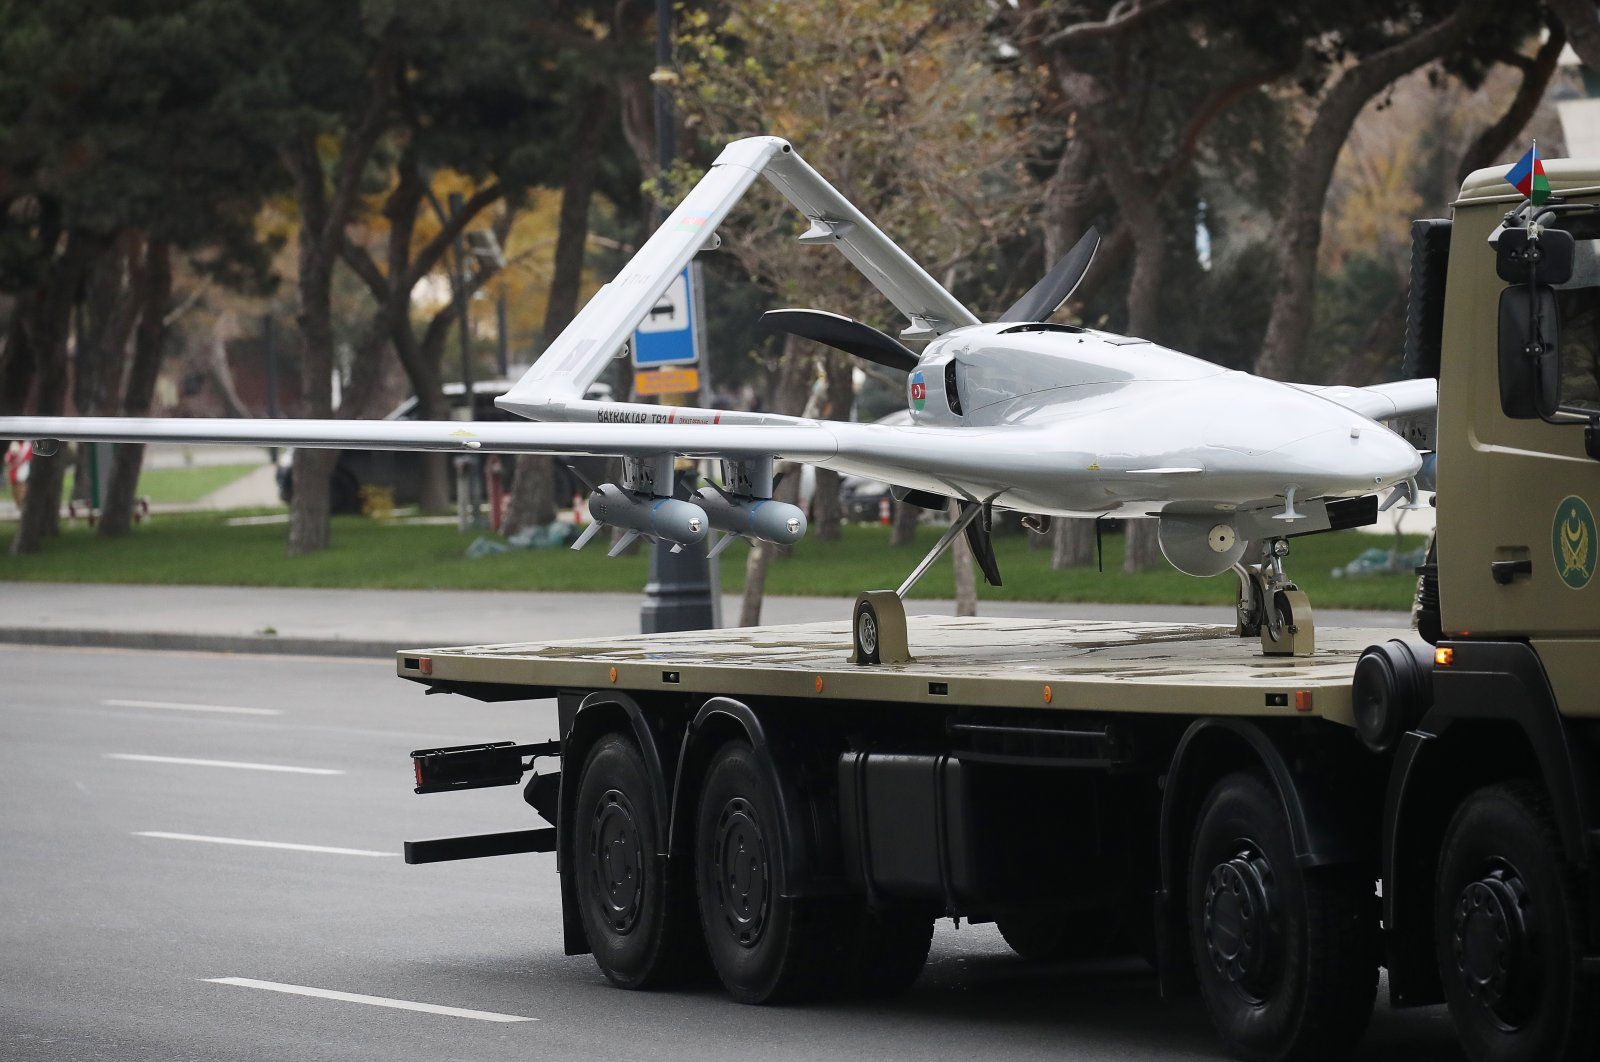 A truck carries a Bayraktar TB2 unmanned combat reconnaissance aerial vehicle manufactured by Turkey's Baykar Makina company during a rehearsal of a military parade in Baku, Azerbaijan, Dec. 9, 2020. (Photo by Getty Images)